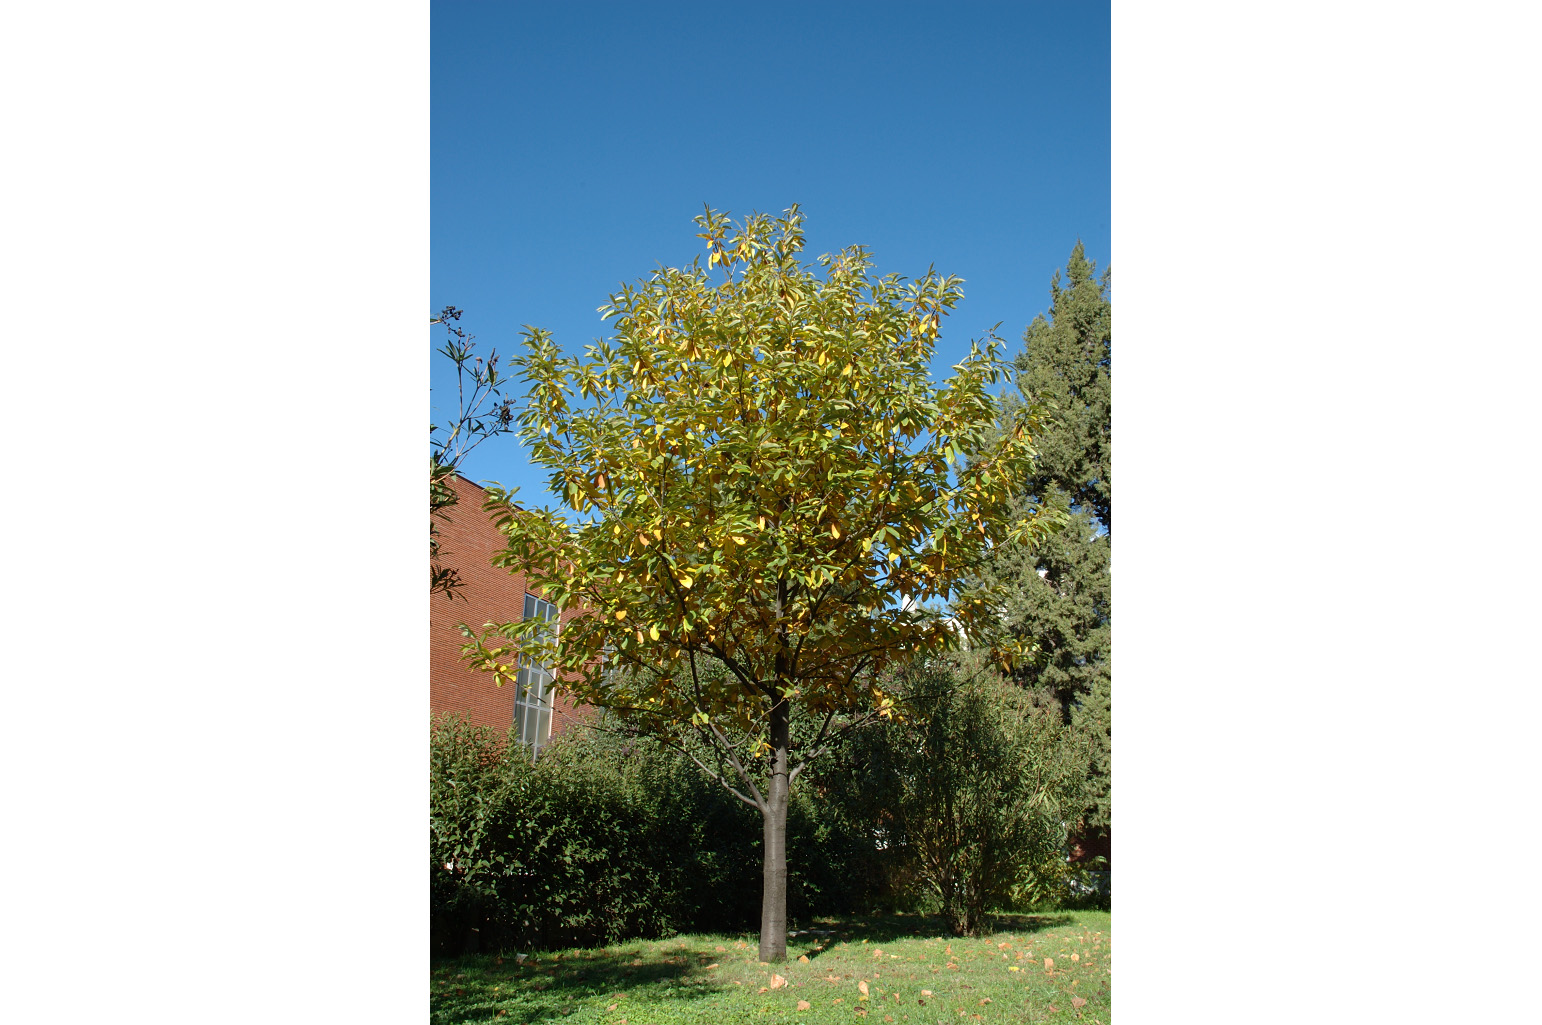 Appearance of a young chestnut tree at the beginning of autumn